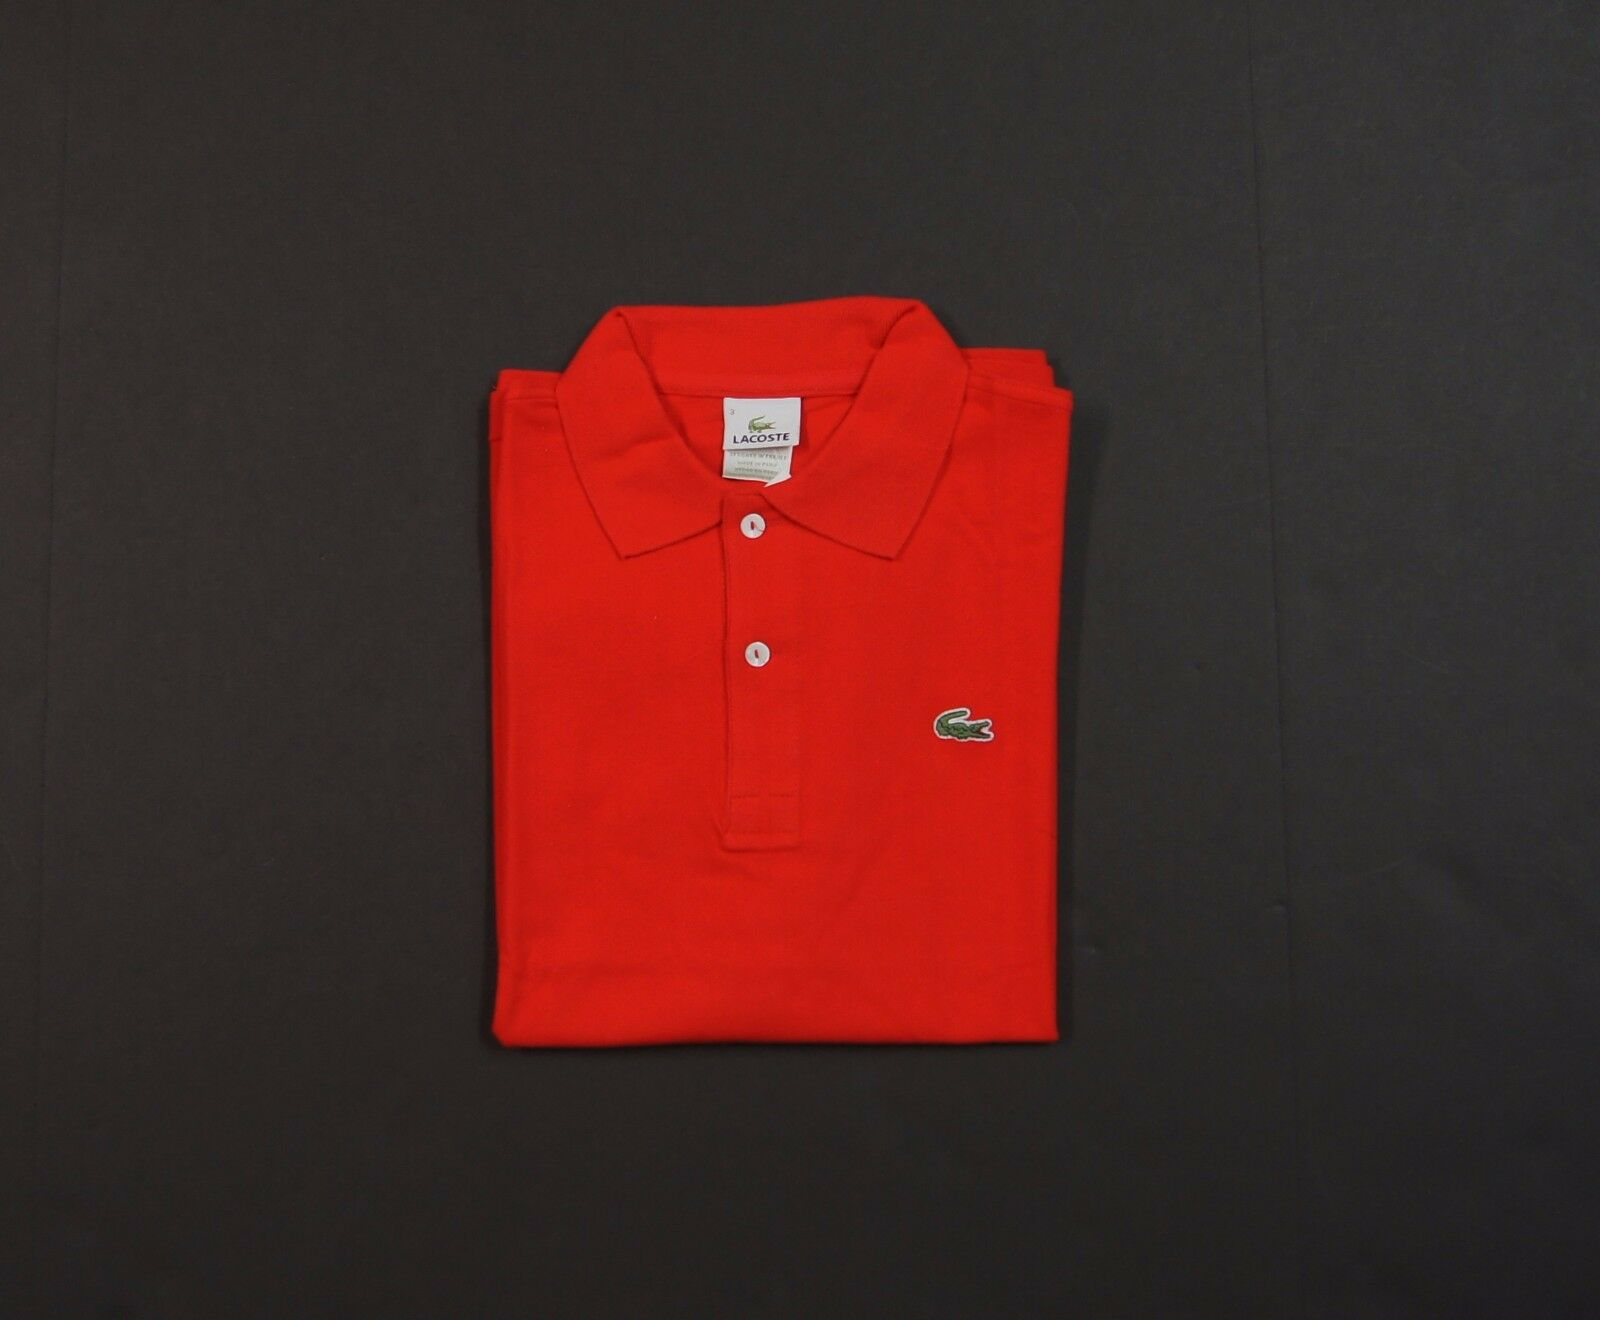 LACOSTE Men Classic Logo Short Sleeve Polo Shirts in Red NEW NWT